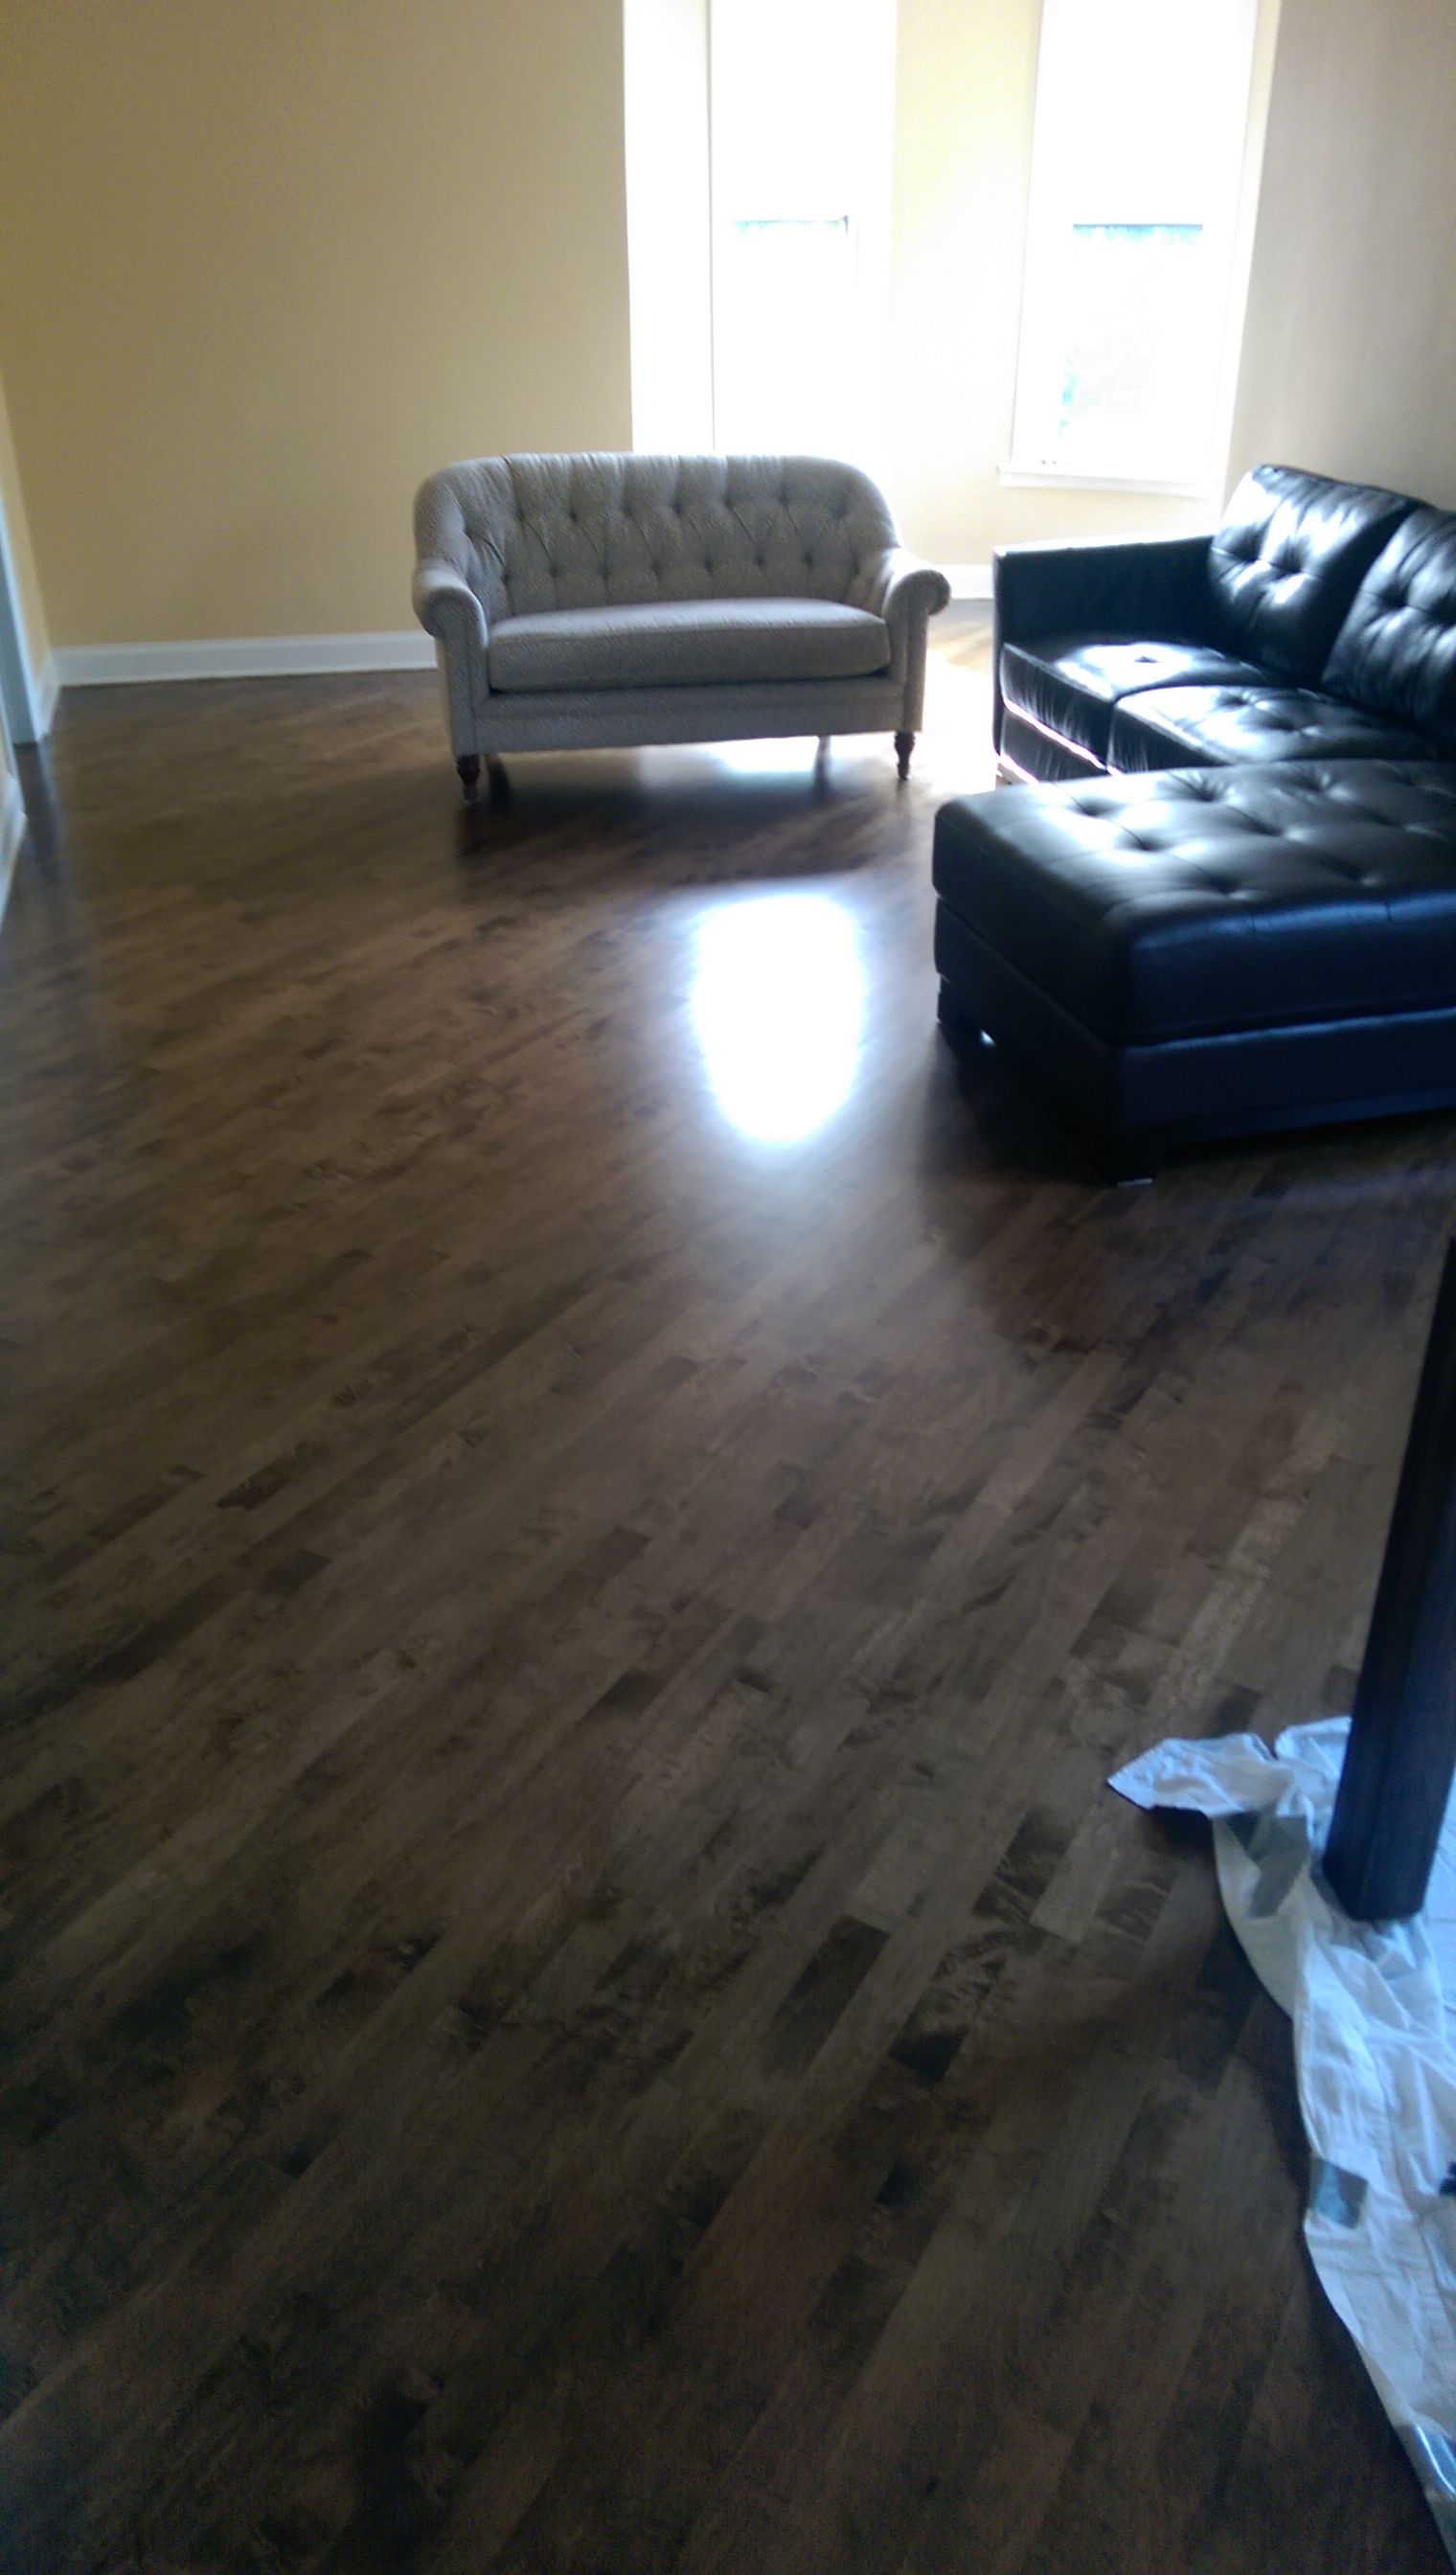 Maple Stained Using Antique Brown Maple Wood Flooring Wood Floor Colors Wood Floor Finishes